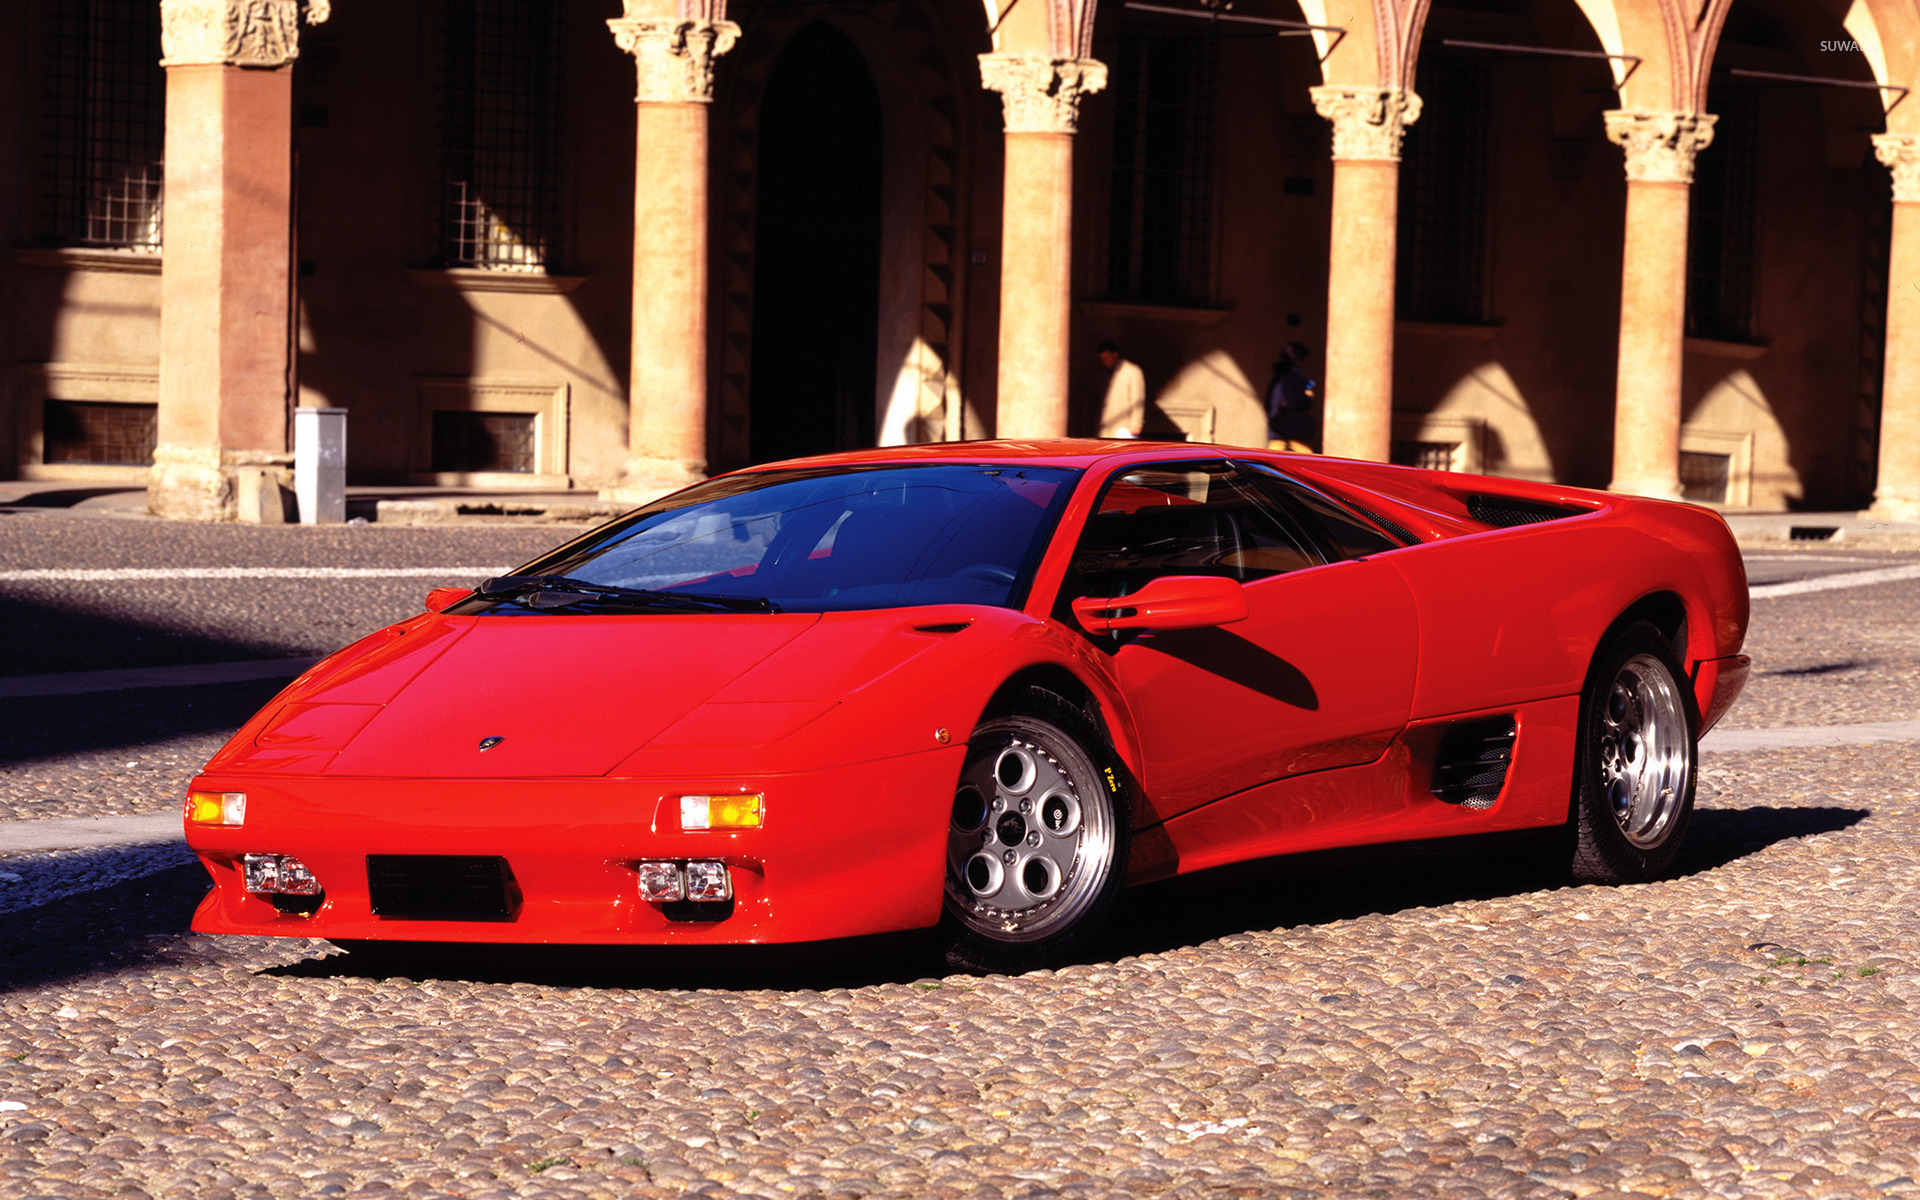 Red Lamborghini Diablo Wallpaper Car Wallpapers 49318